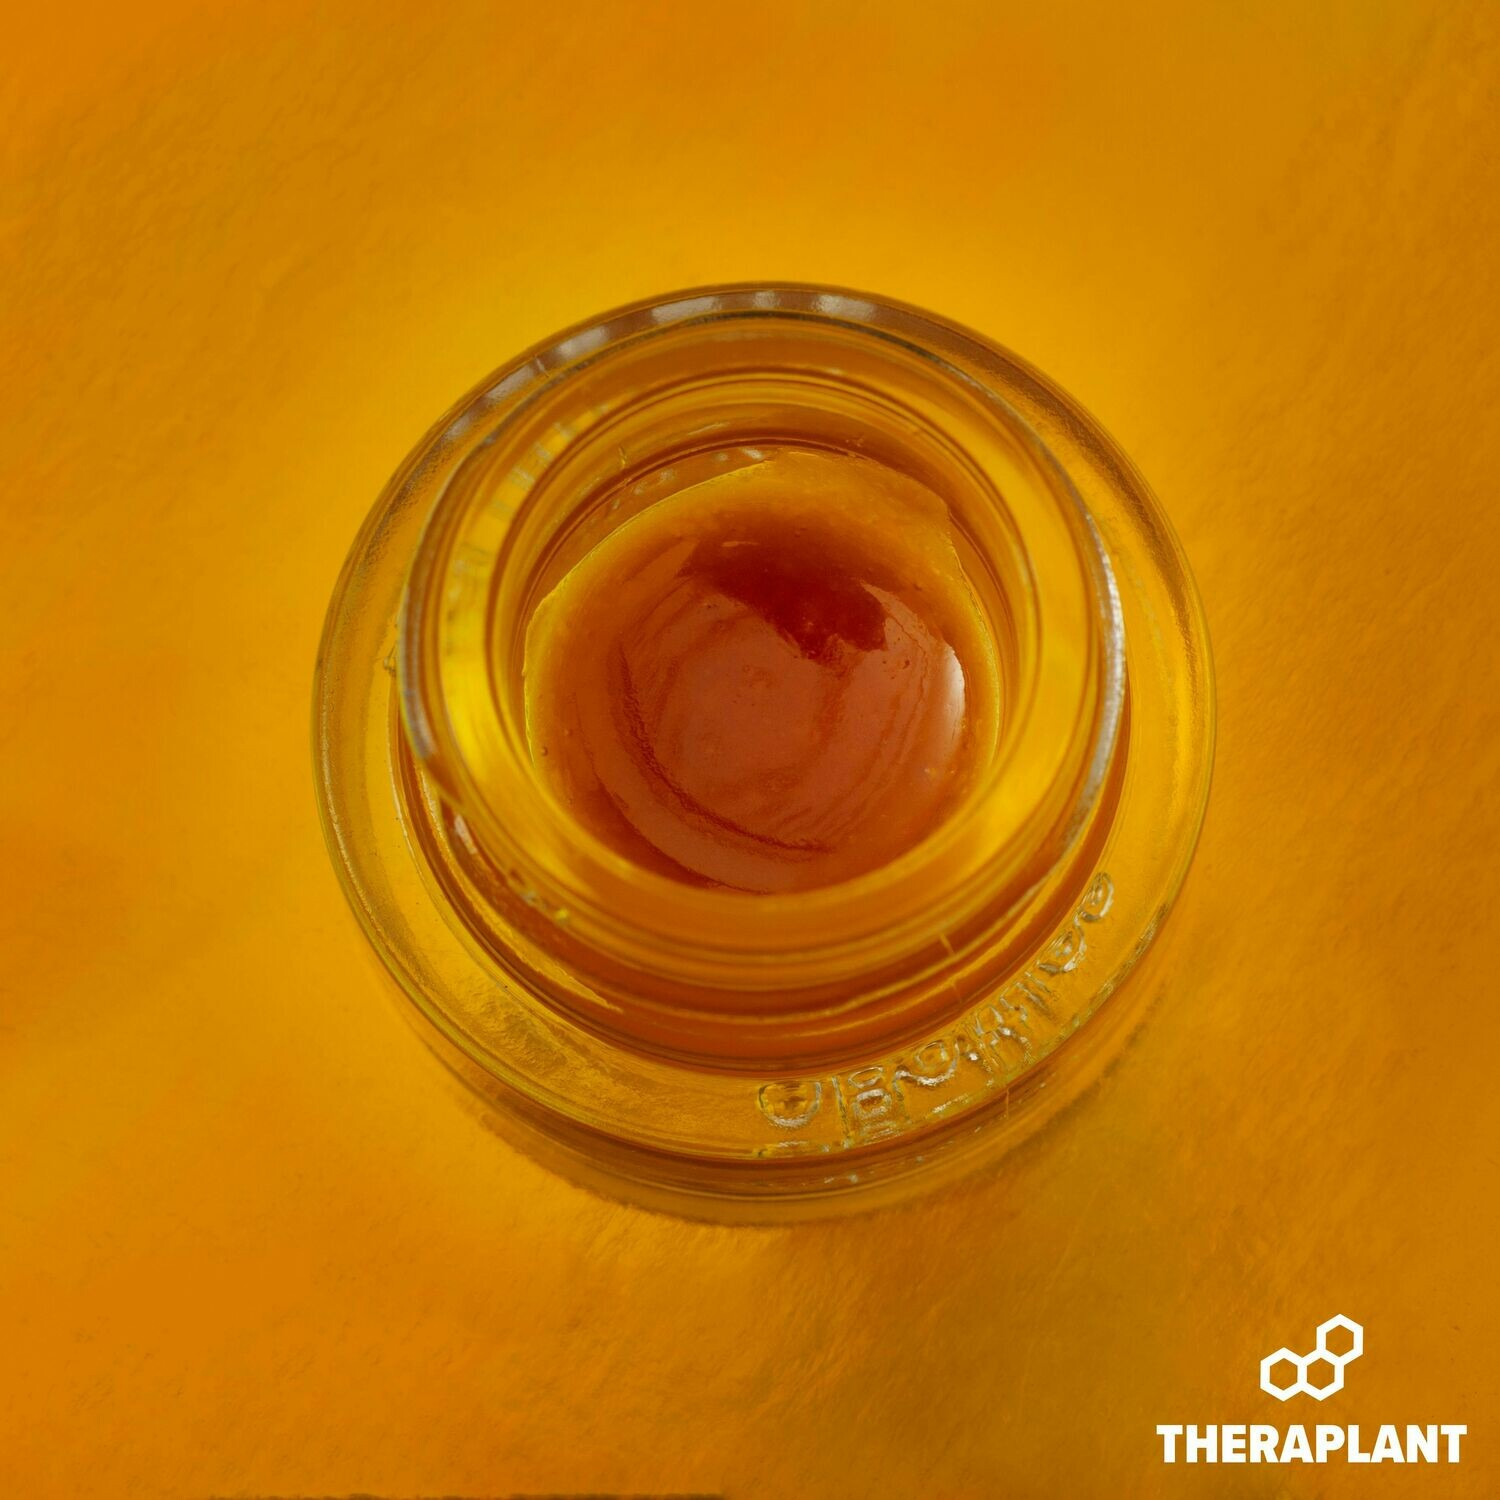 Songrica T78 SW 9332 - 1g Soft Concentrate (Theraplant)